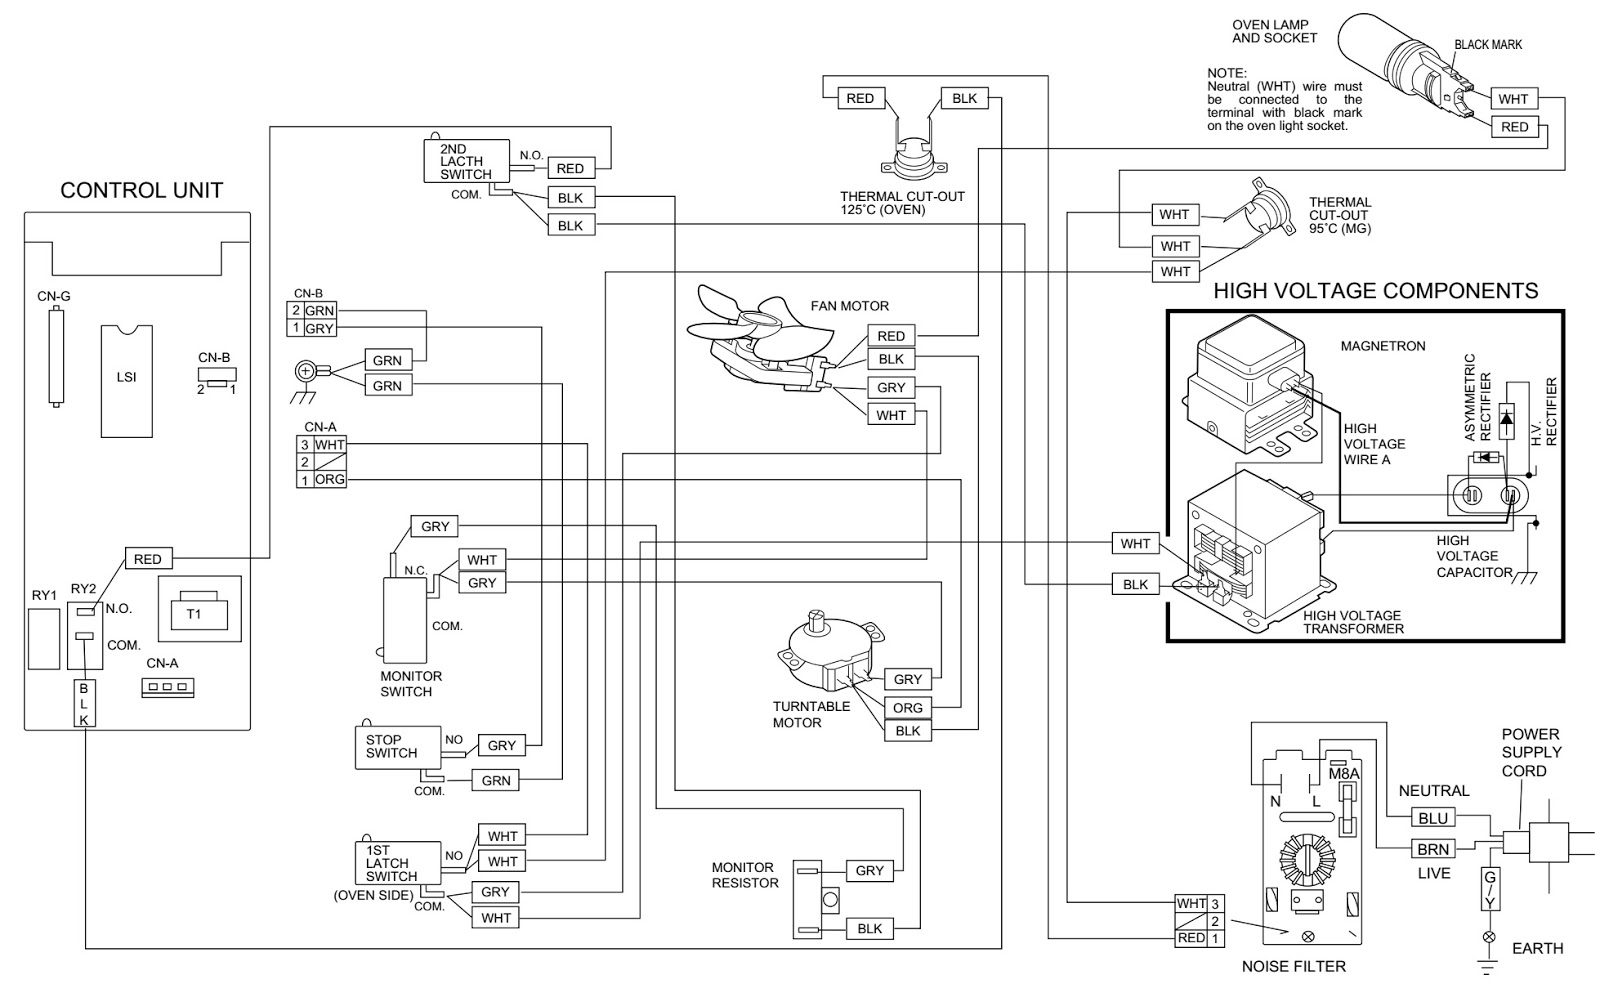 Ge Microwave Wiring Diagram All Vehicle Diagrams Samsung Camera Sme 4221n Oven 29 Images For